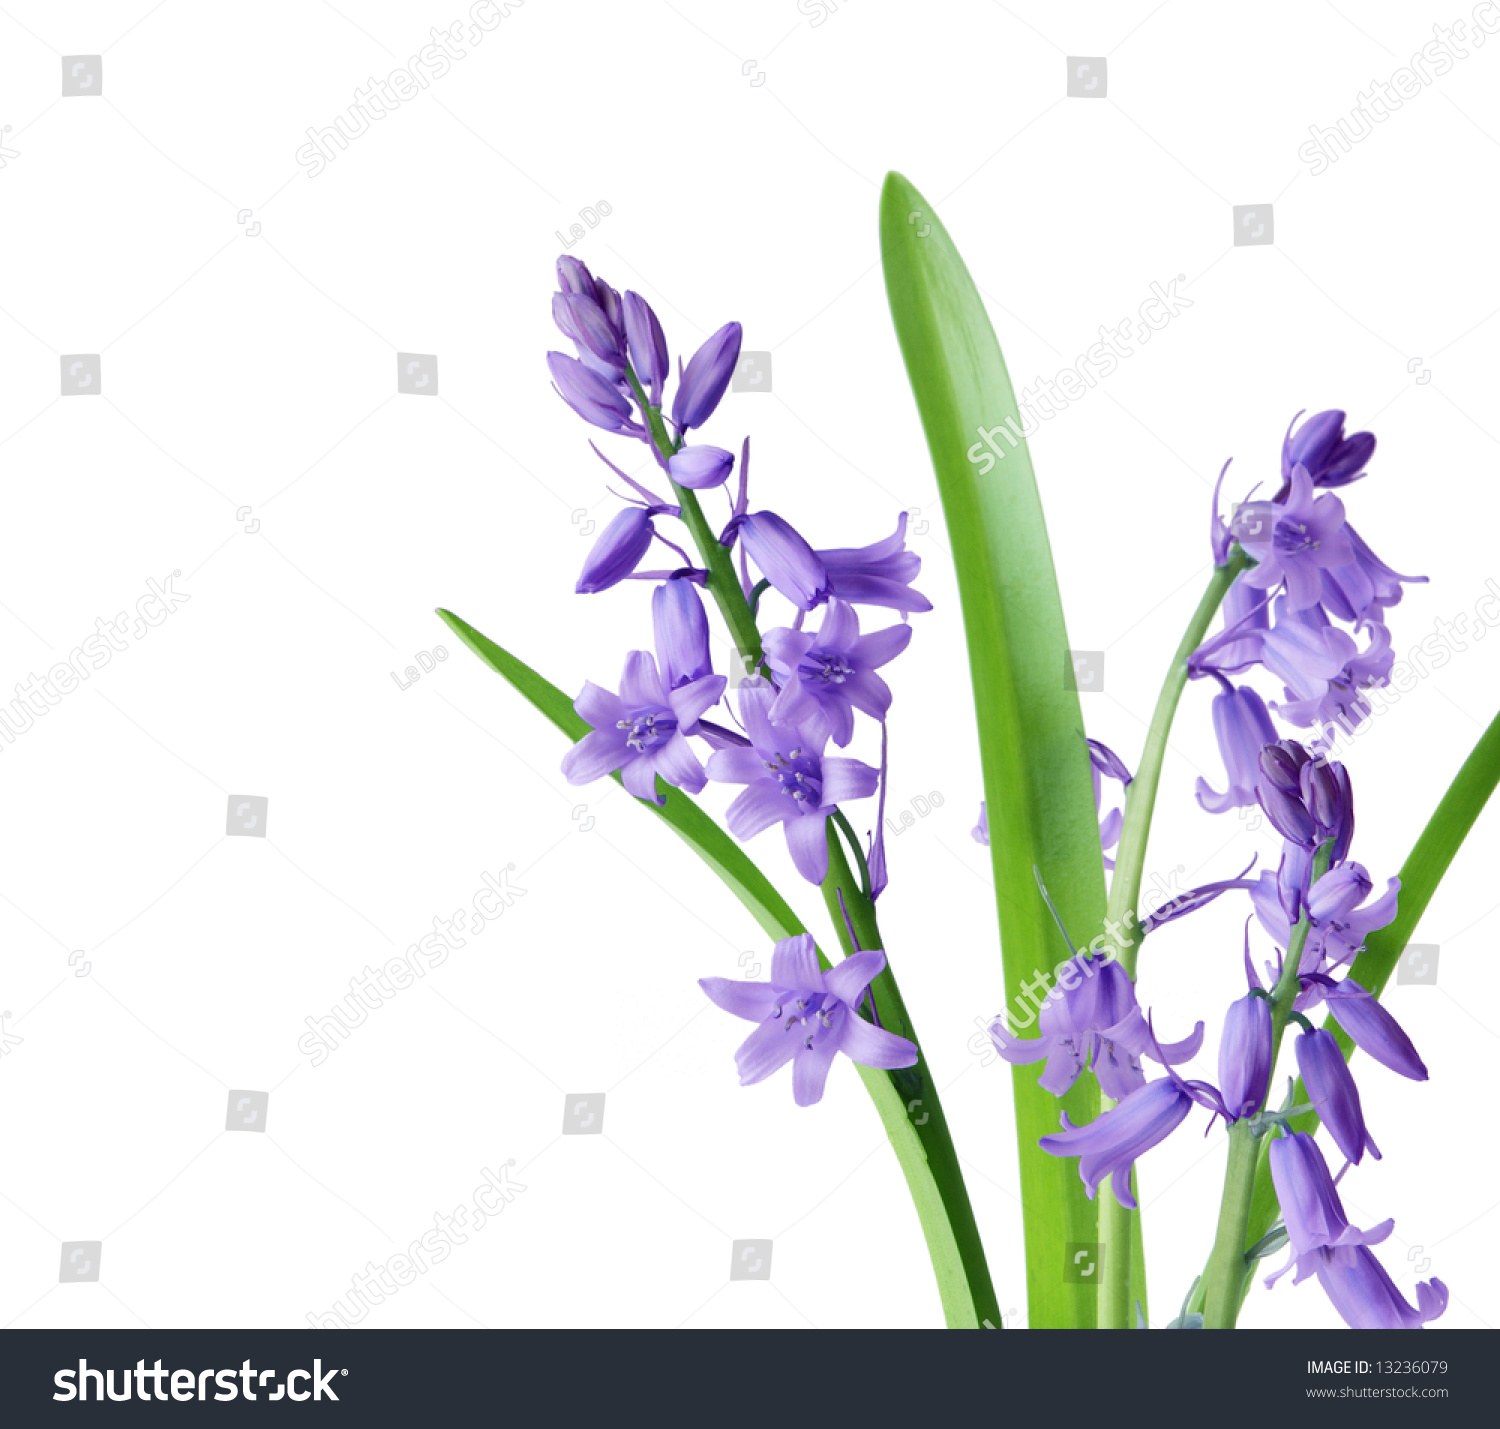 White blue bell like flowers image collections flower decoration ideas white blue bell like flowers image collections flower decoration ideas white blue bell like flowers image mightylinksfo Gallery